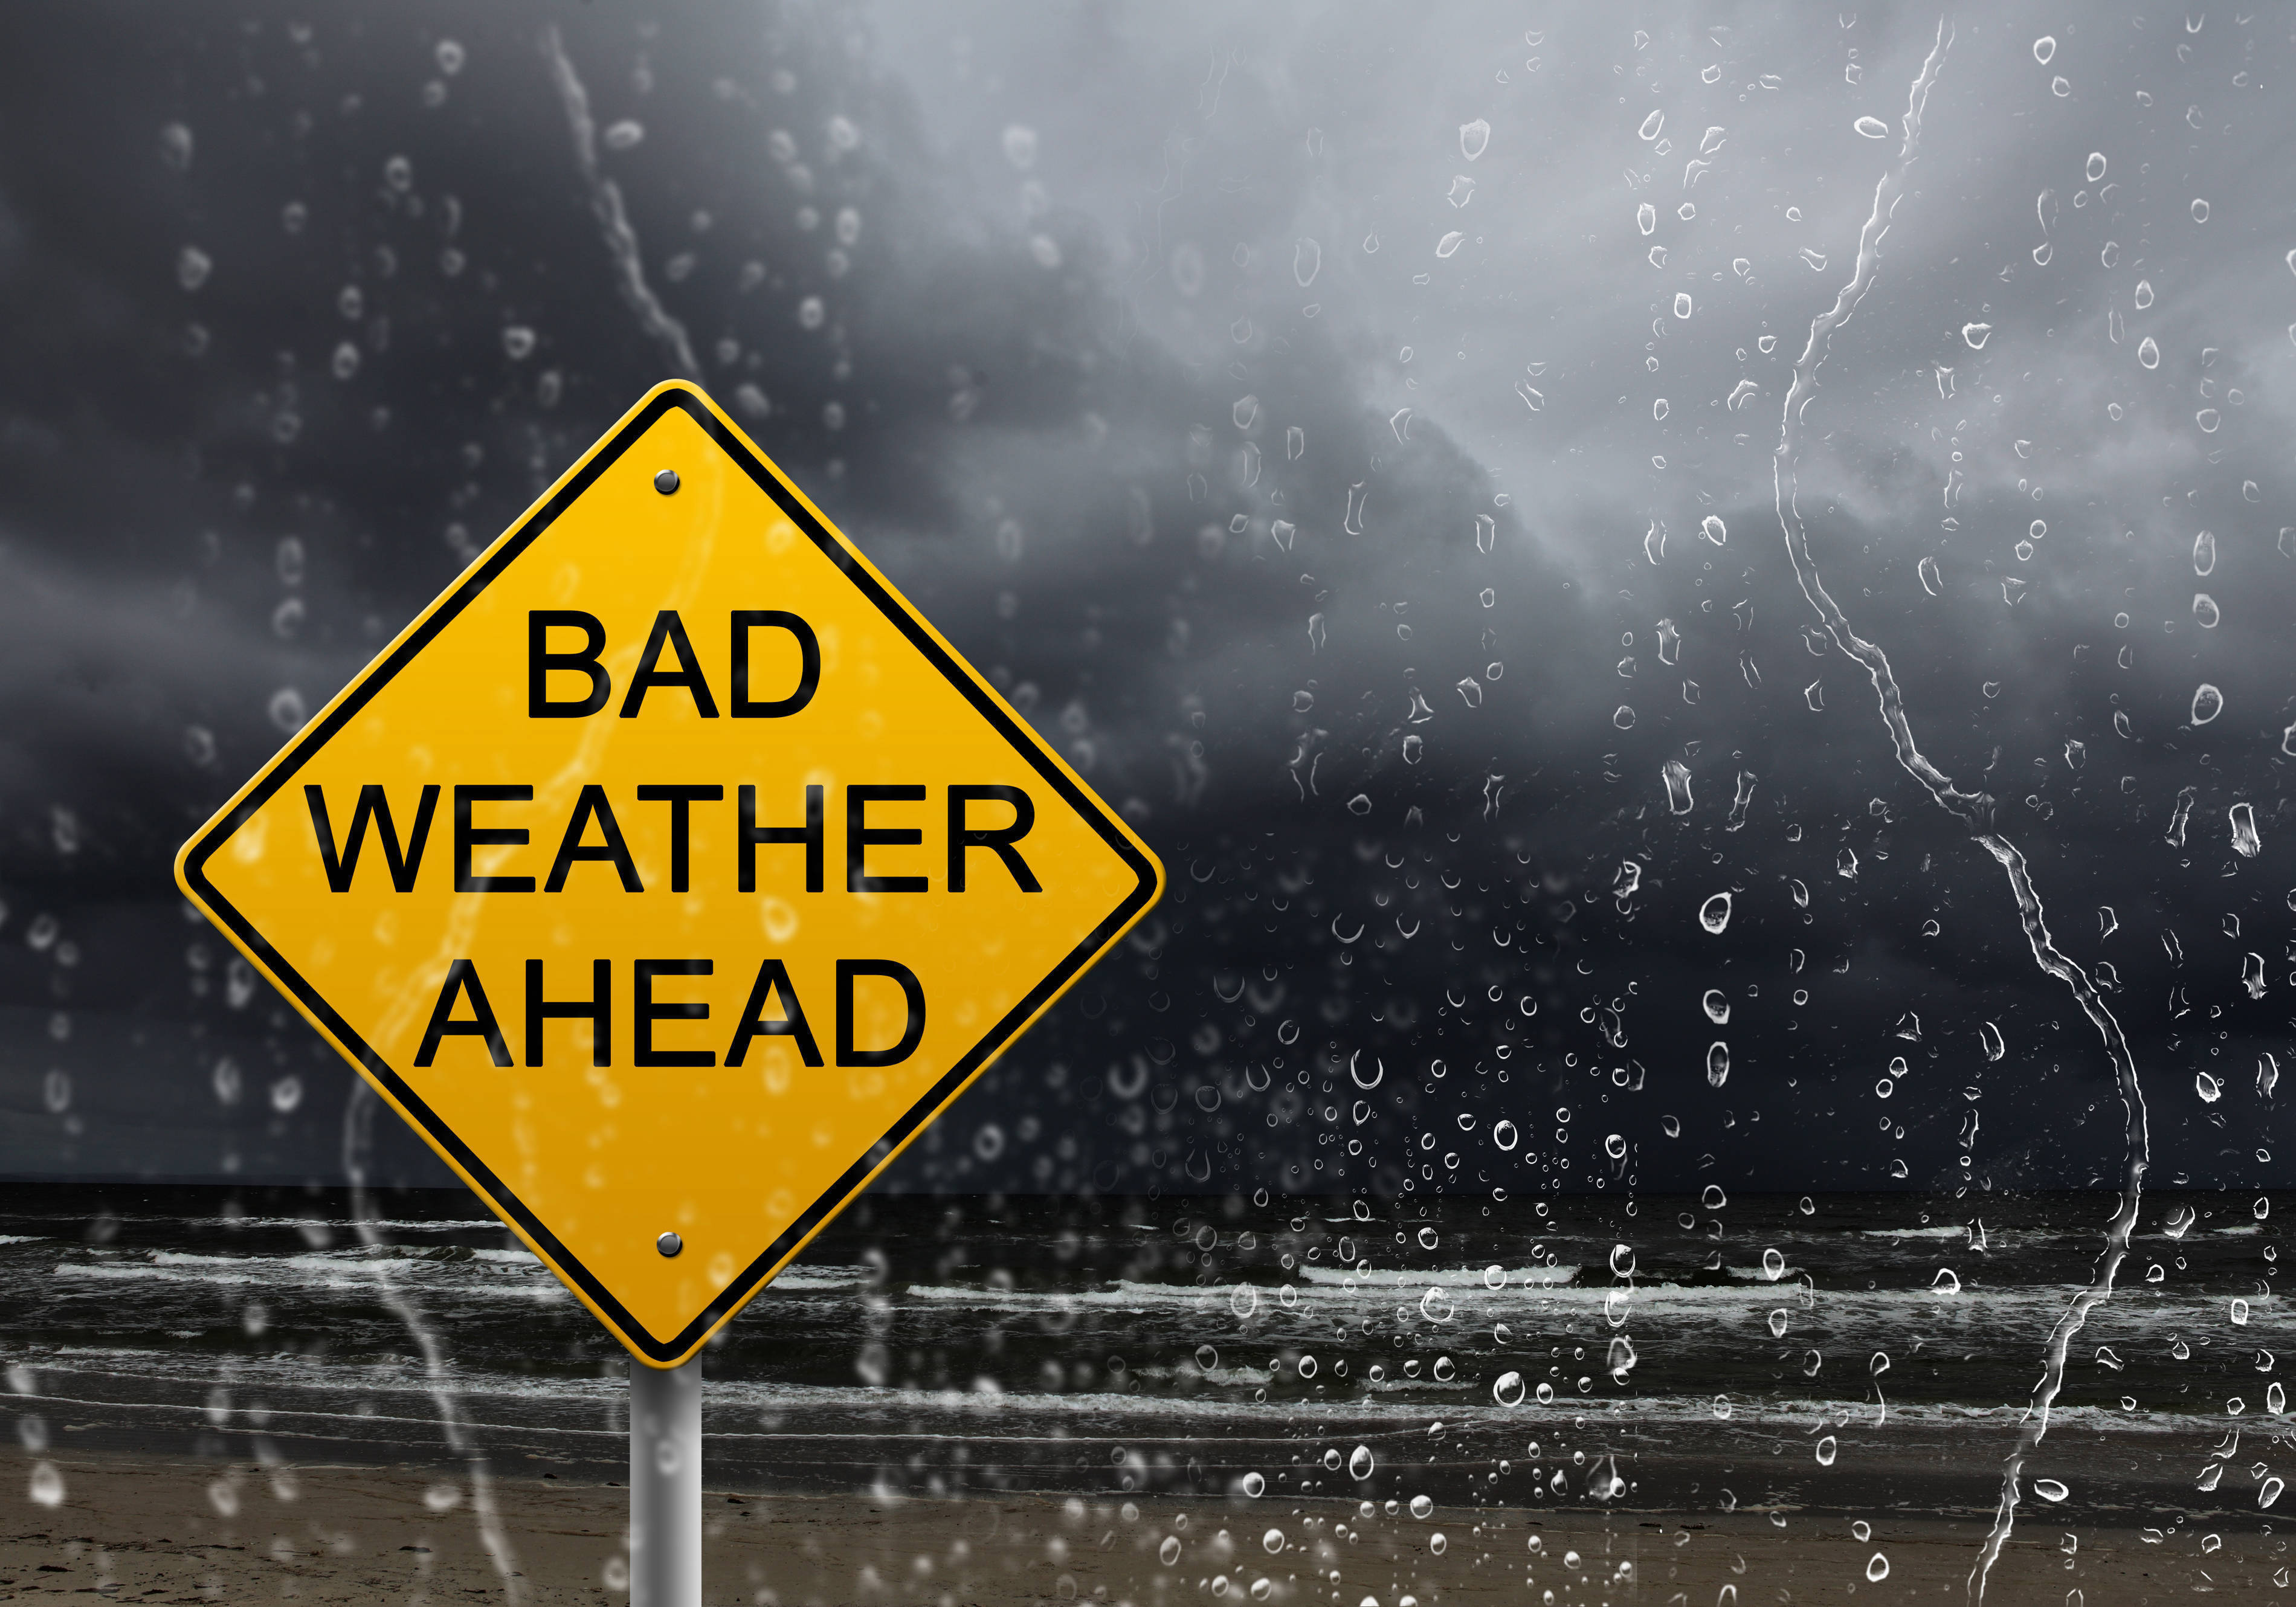 Nor'easter with Coastal Flood Warning and Wind Advisory Issued by National Weather Service